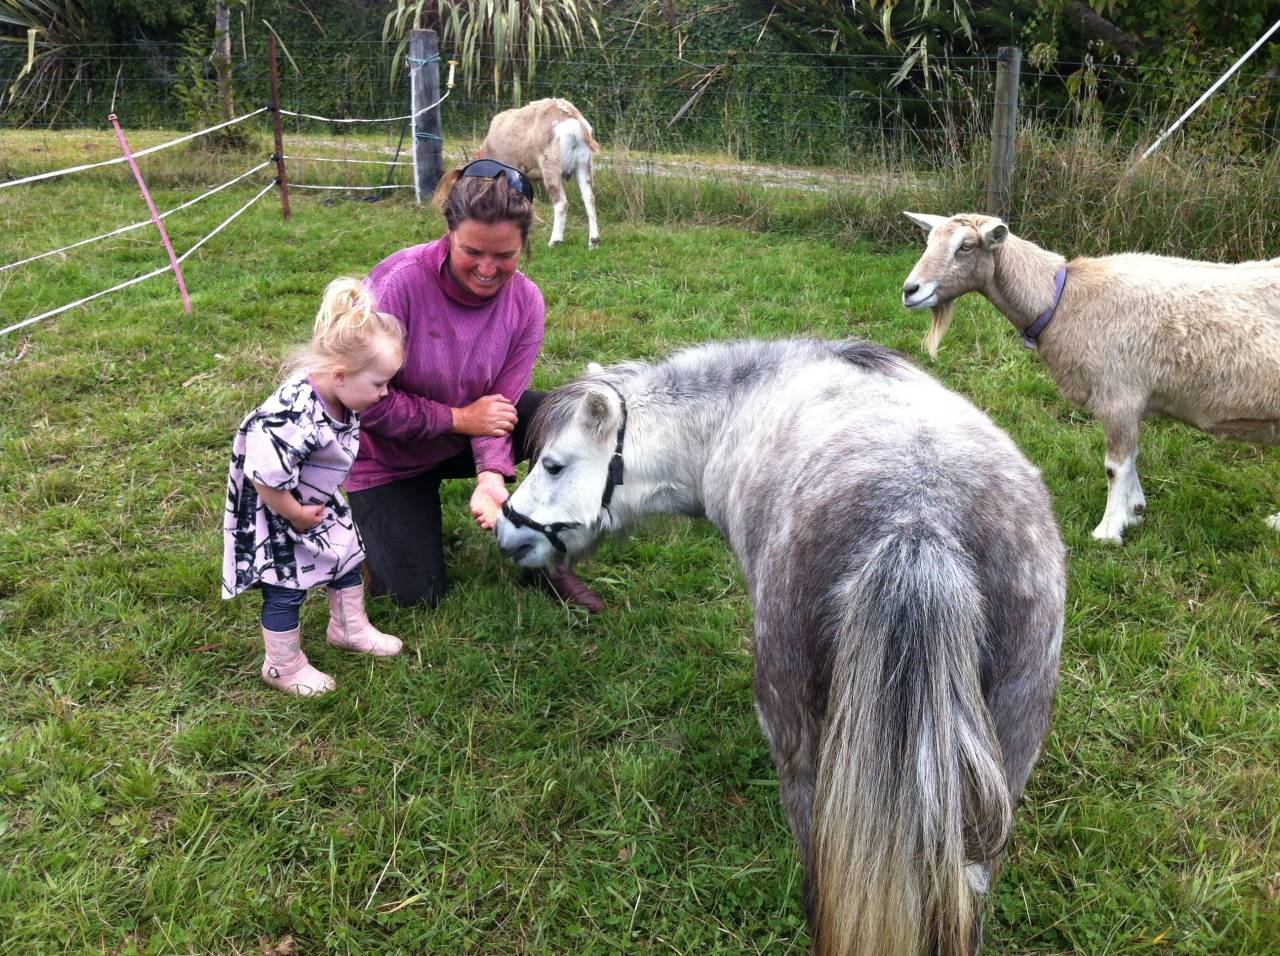 Pony Tiny and the two pet goats